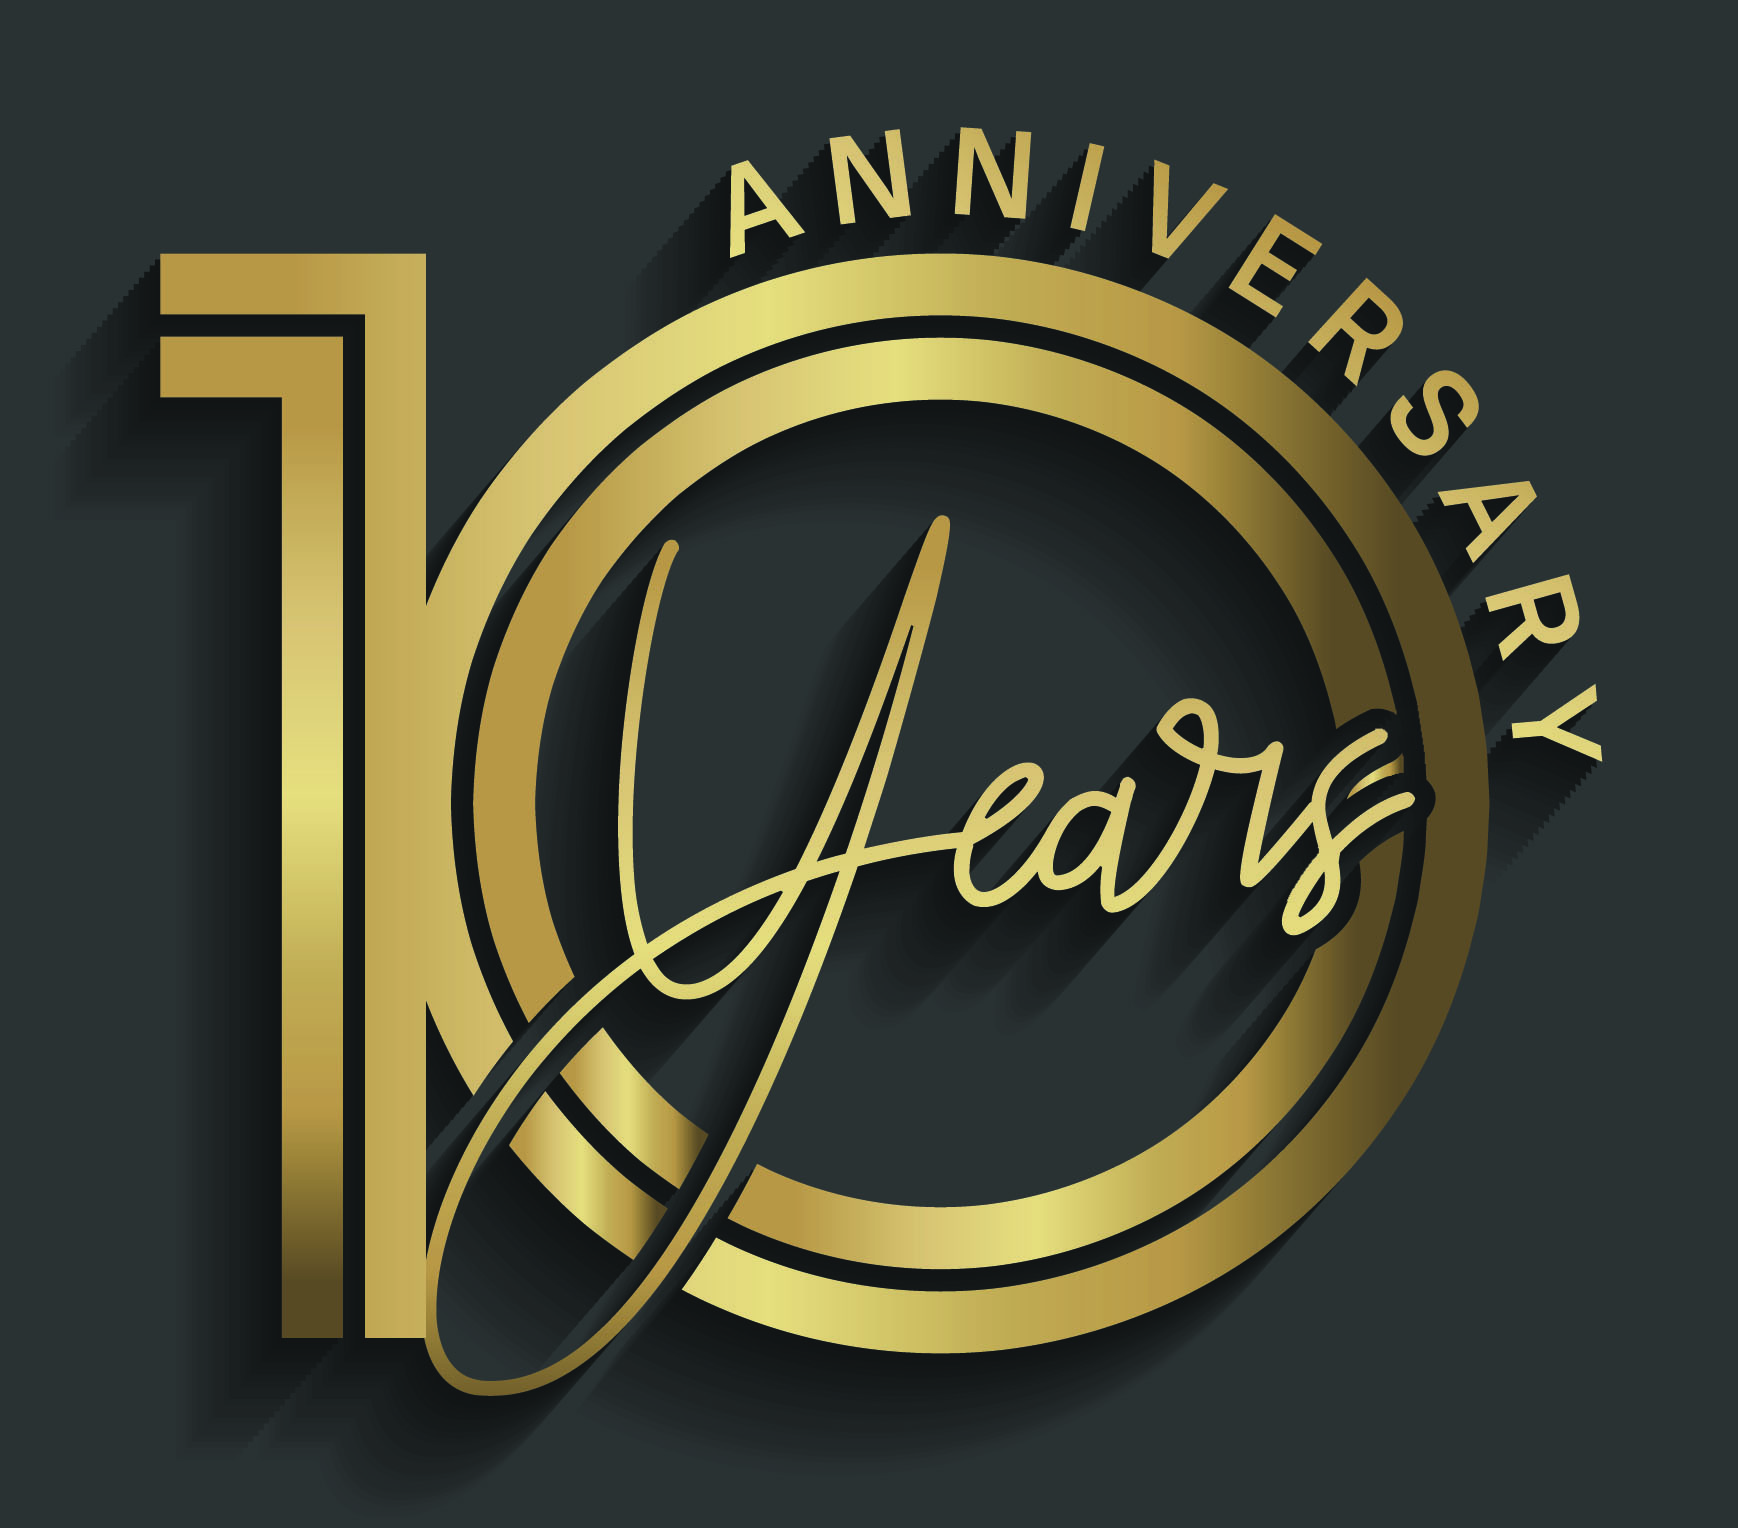 G3 News - Celebrating 10 Years!